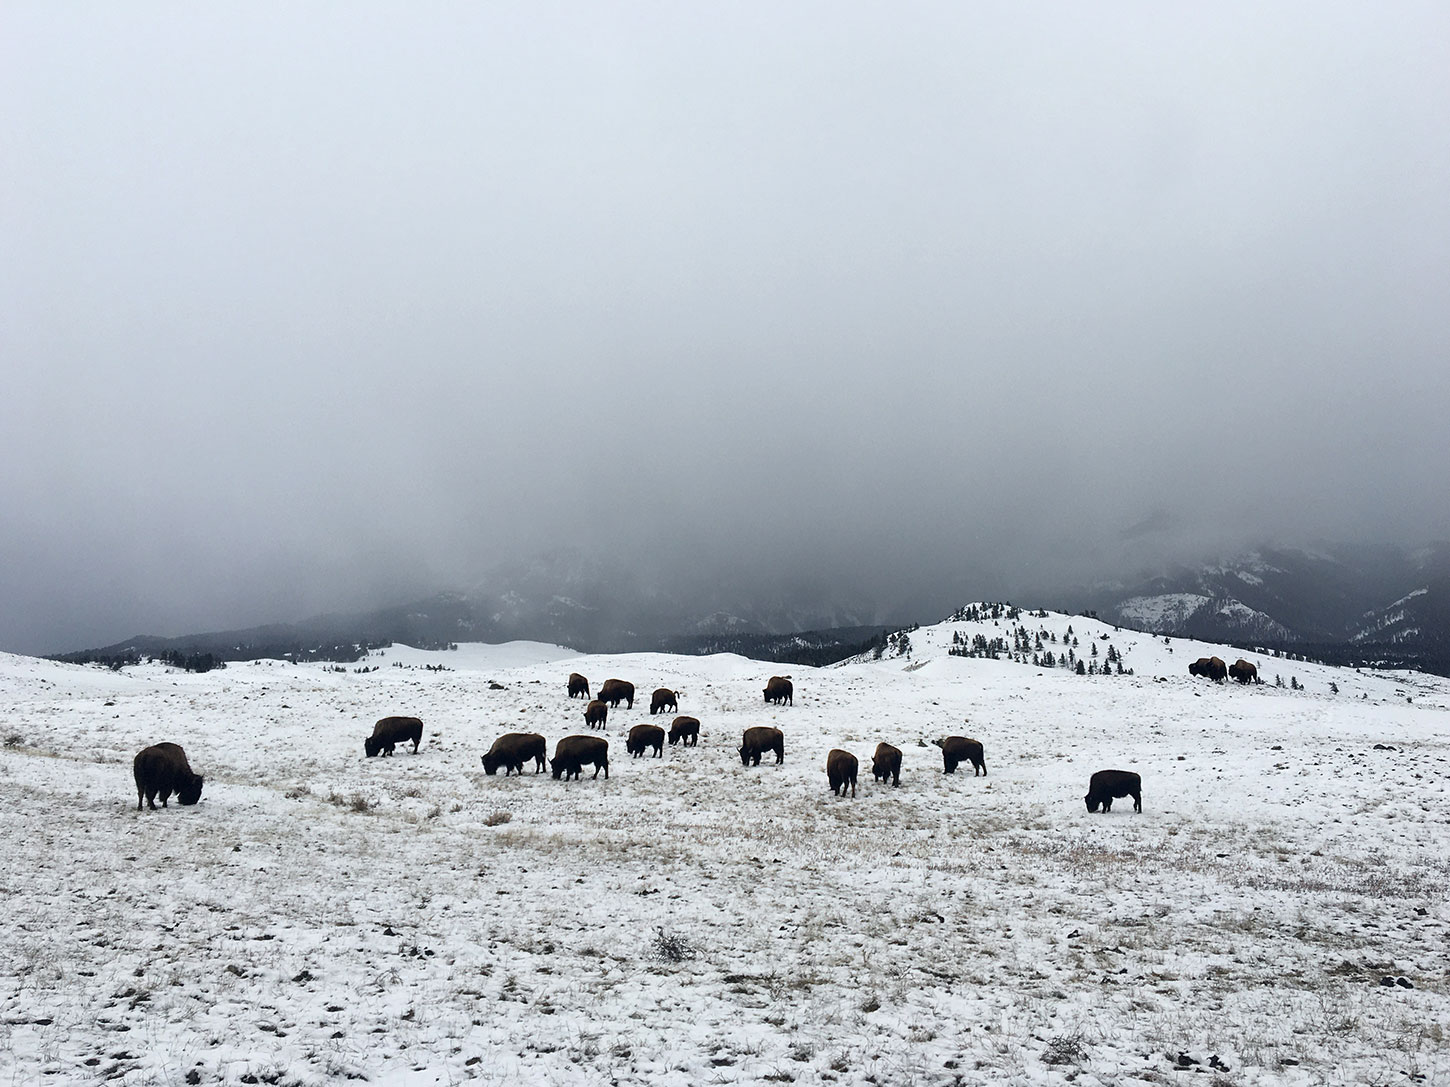 Winter bison at Yellowstone National Park